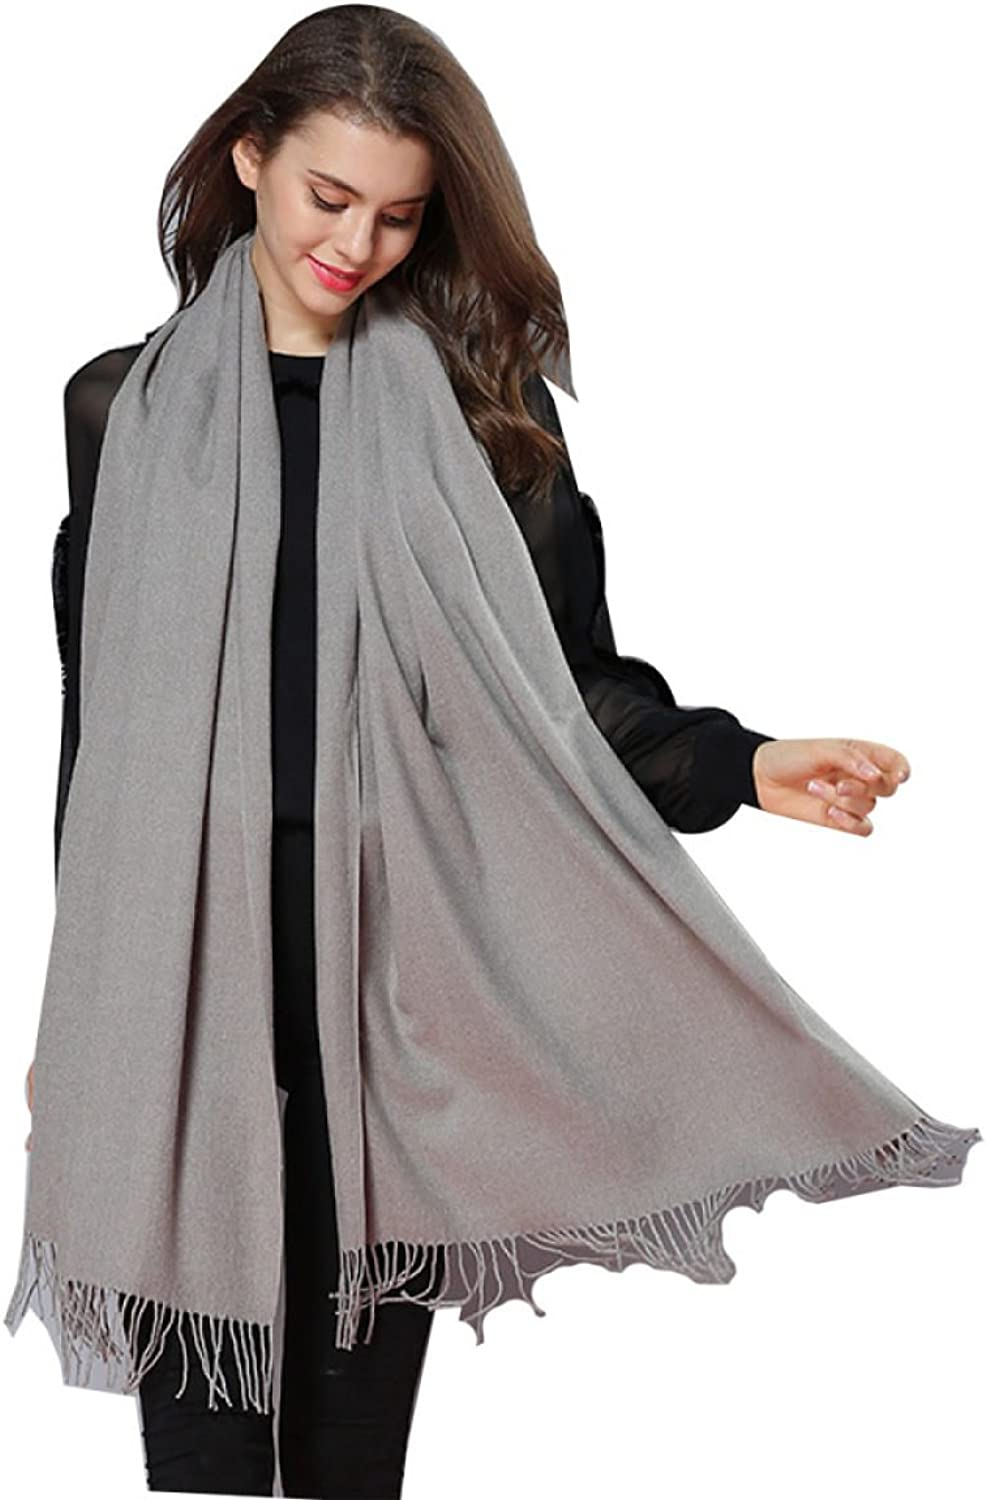 2017 Autumn And Winter New Scarf Woman Thicker Long Section Solid color Warm Big Shawl,8OneSize